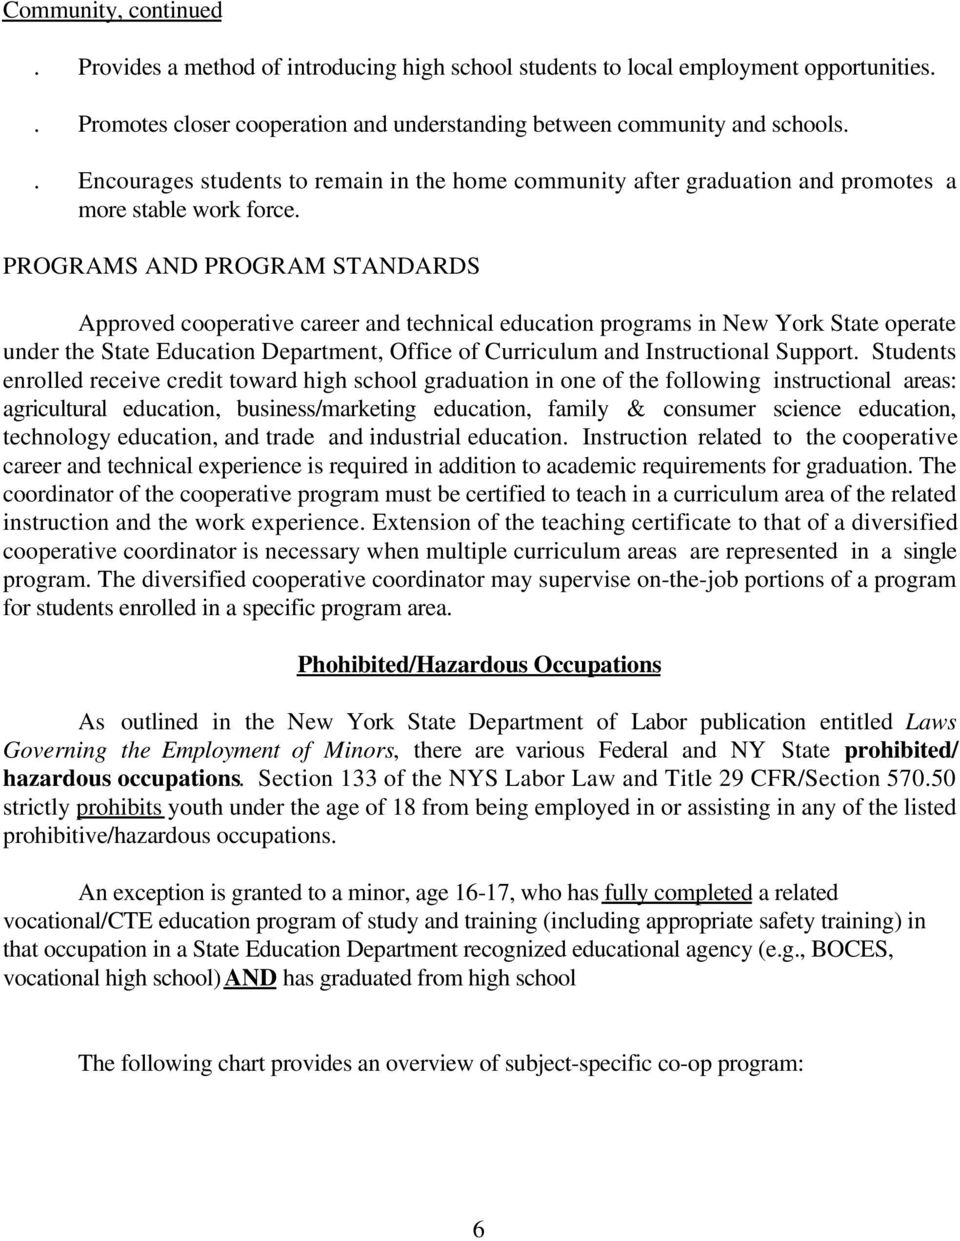 PROGRAMS AND PROGRAM STANDARDS Approved cooperative career and technical education programs in New York State operate under the State Education Department, Office of Curriculum and Instructional